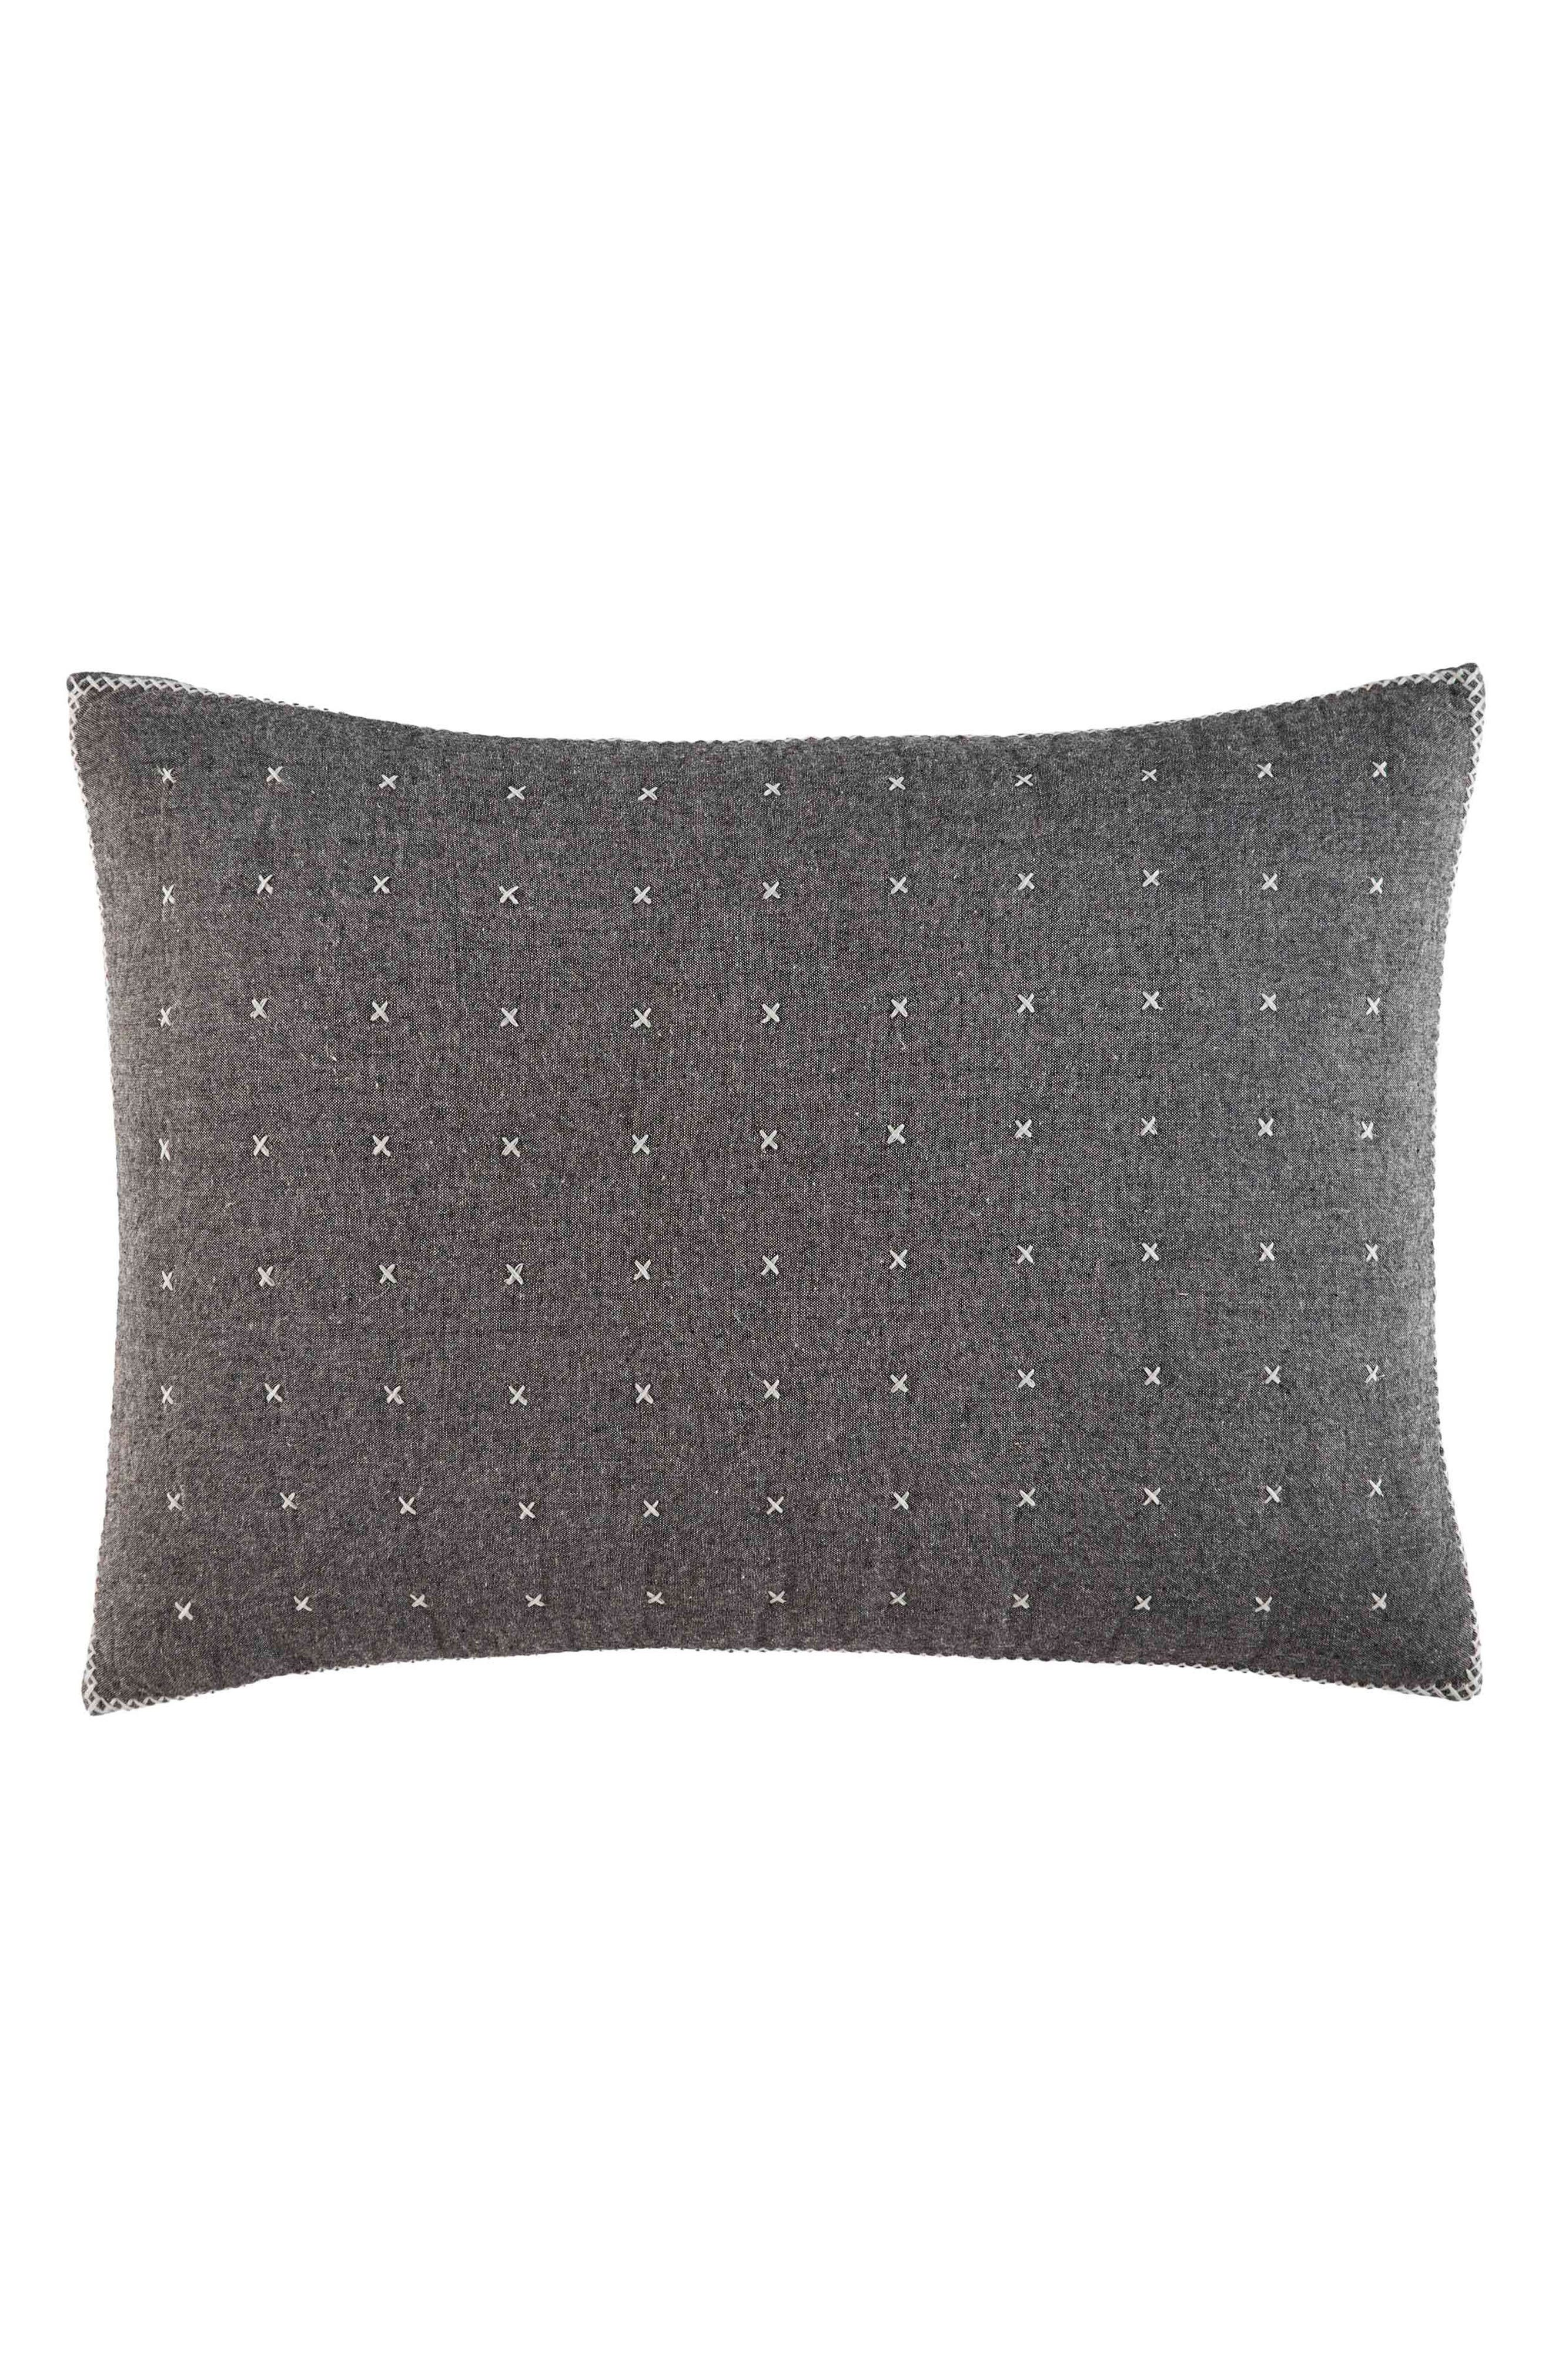 Greystone Accent Pillow,                         Main,                         color, Grey